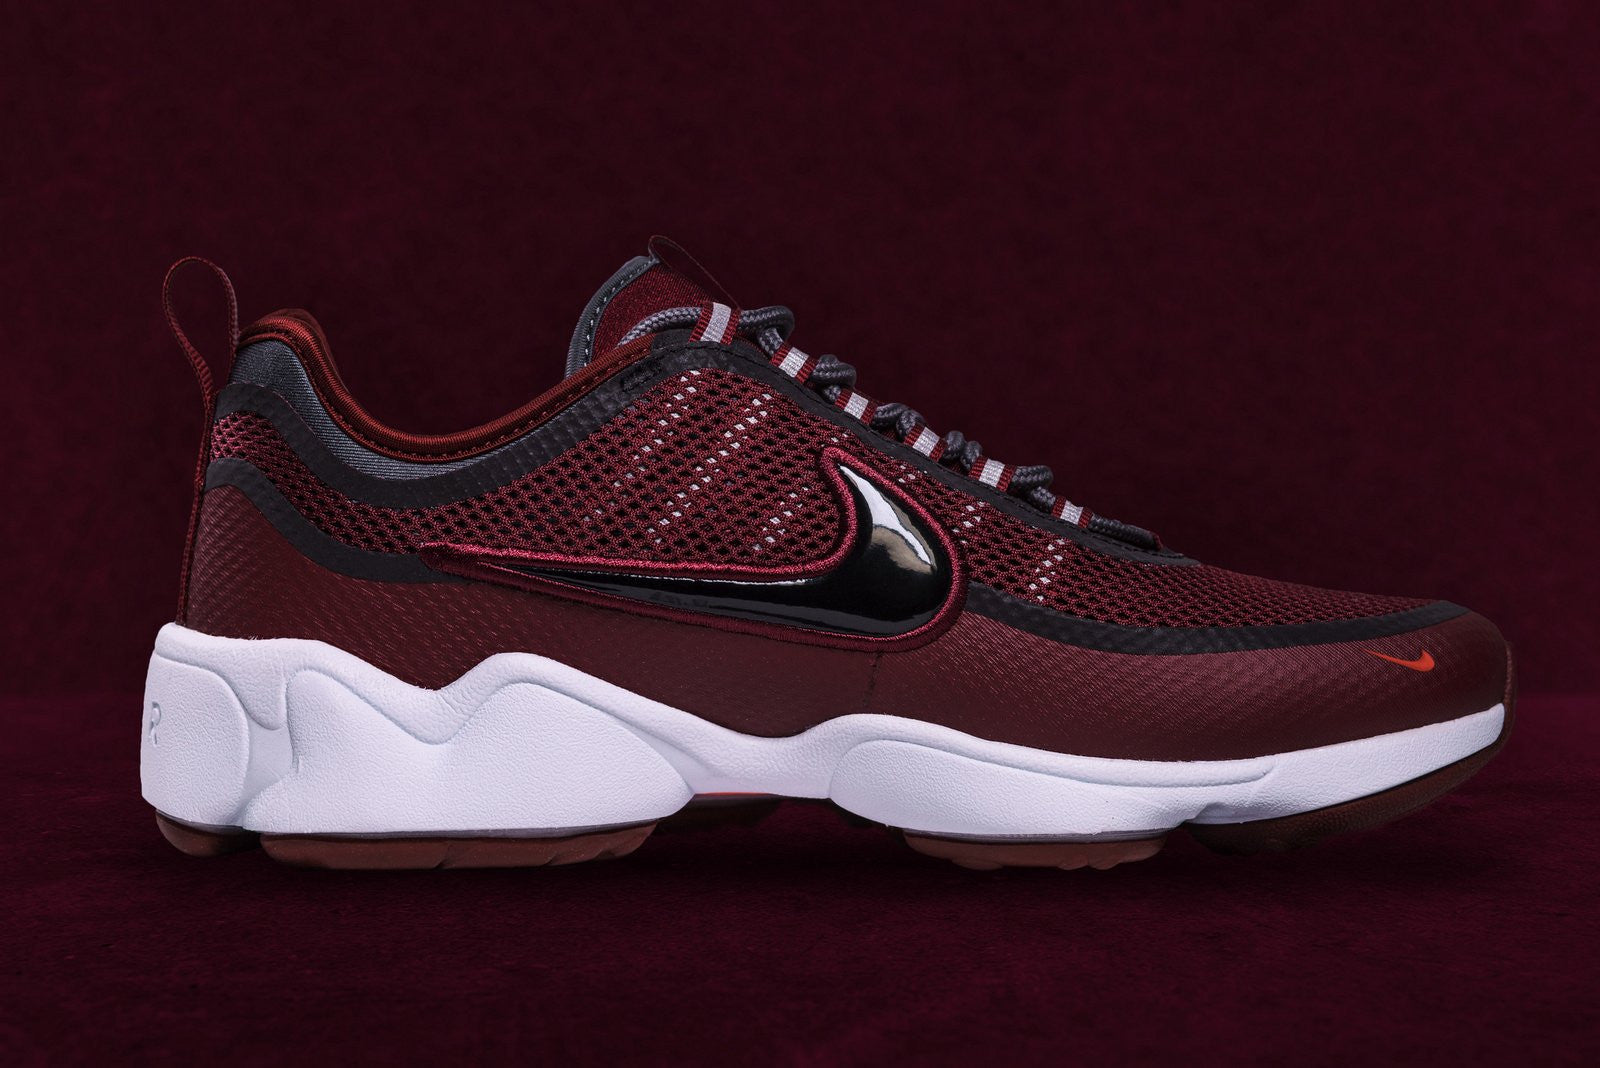 NIKE ZOOM SPRDN Team Red - Oneness Boutique